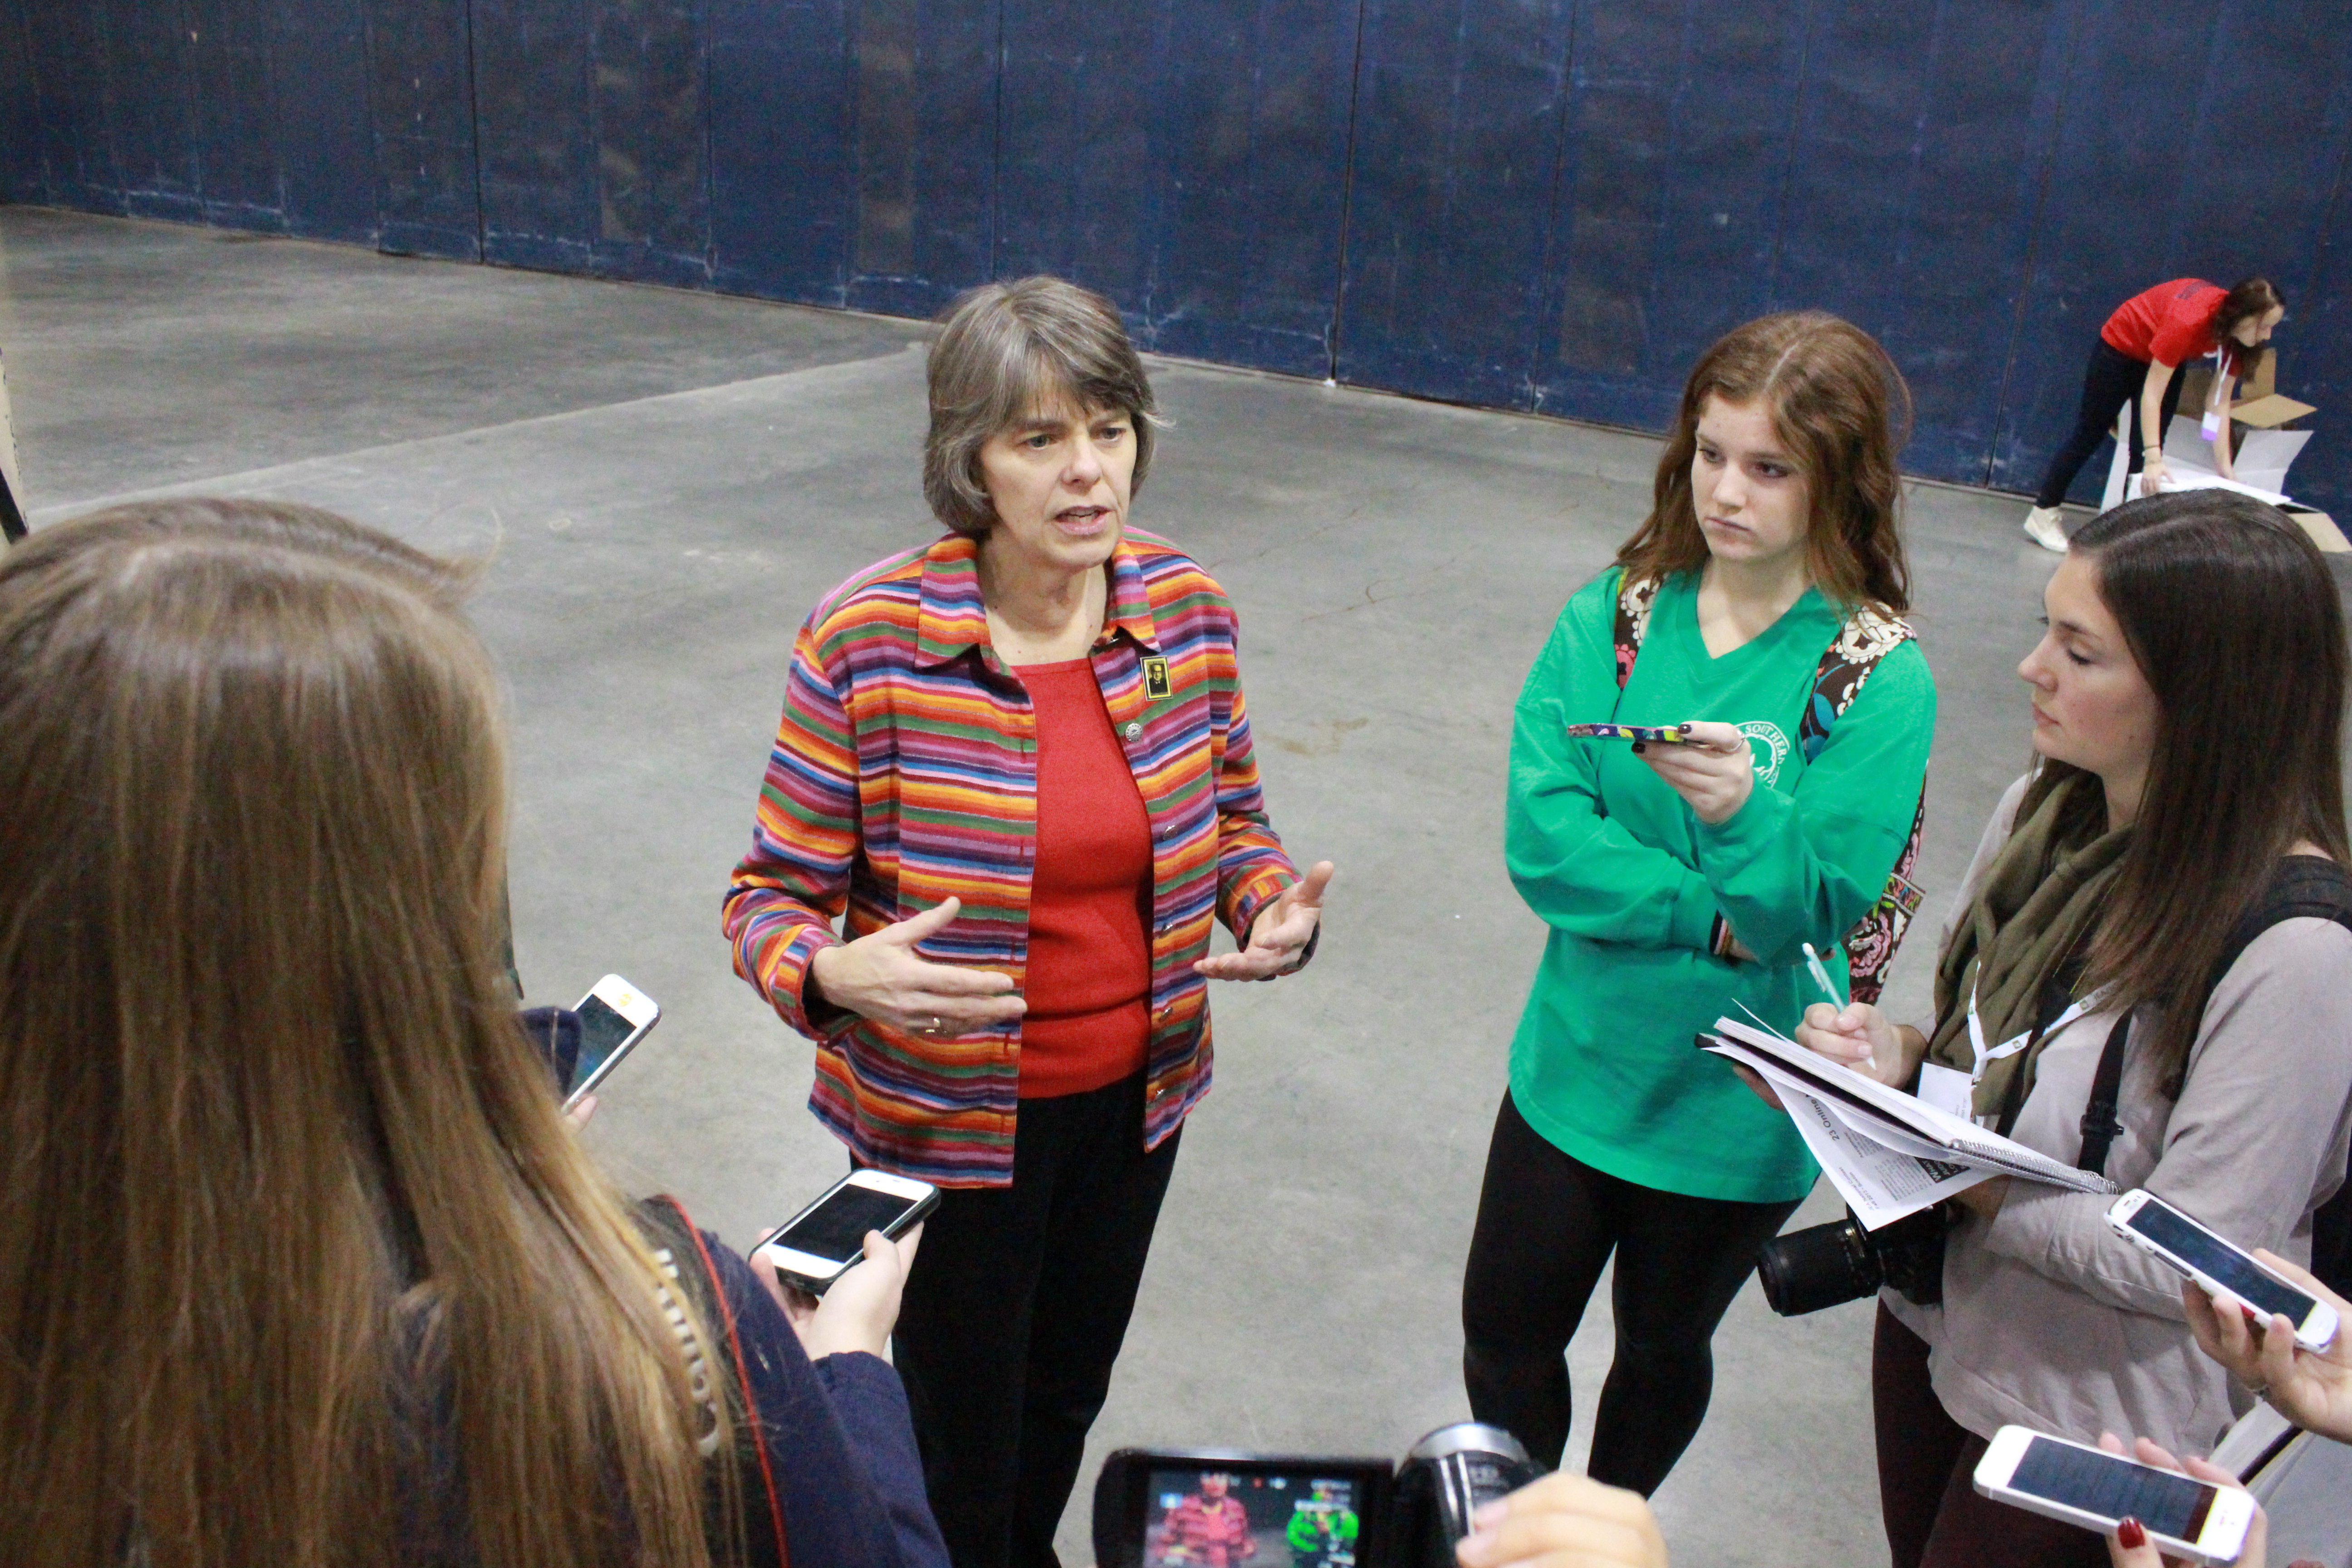 Mary Beth Tinker speaks to student journalists at the 2013 JEA/NSPA Conference in Boston, Mass.